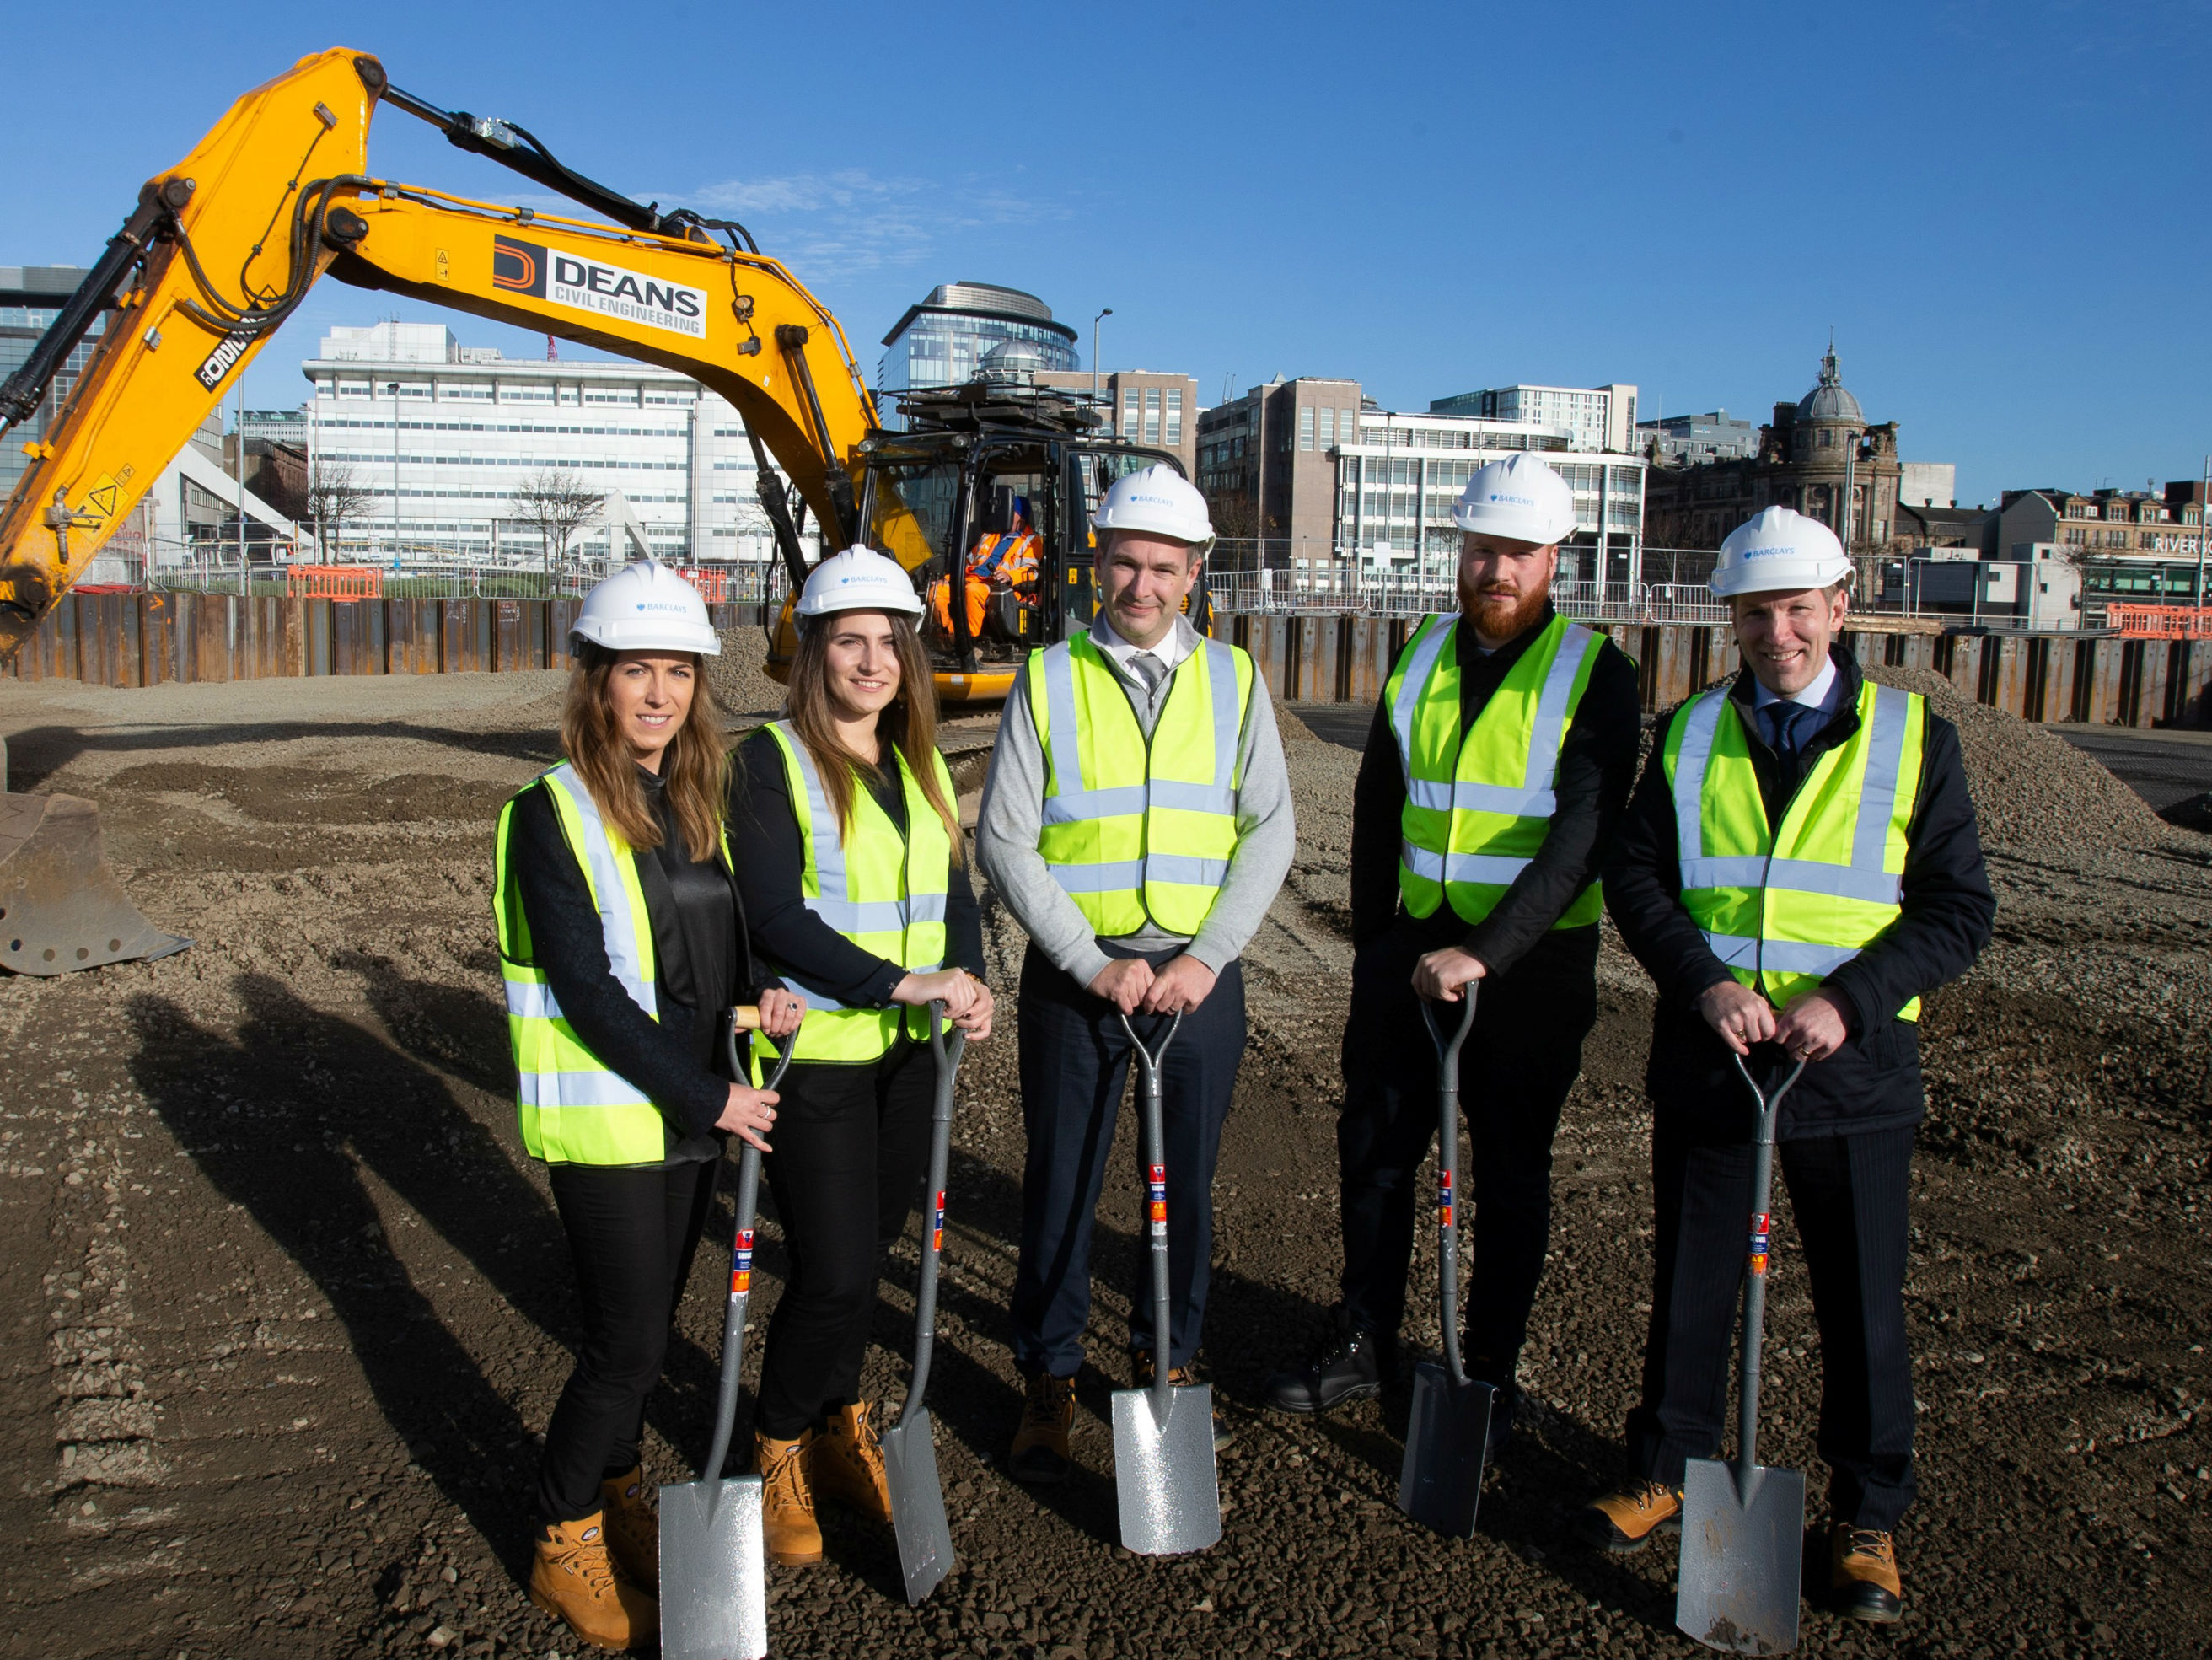 Barclays breaks ground on new Glasgow campus